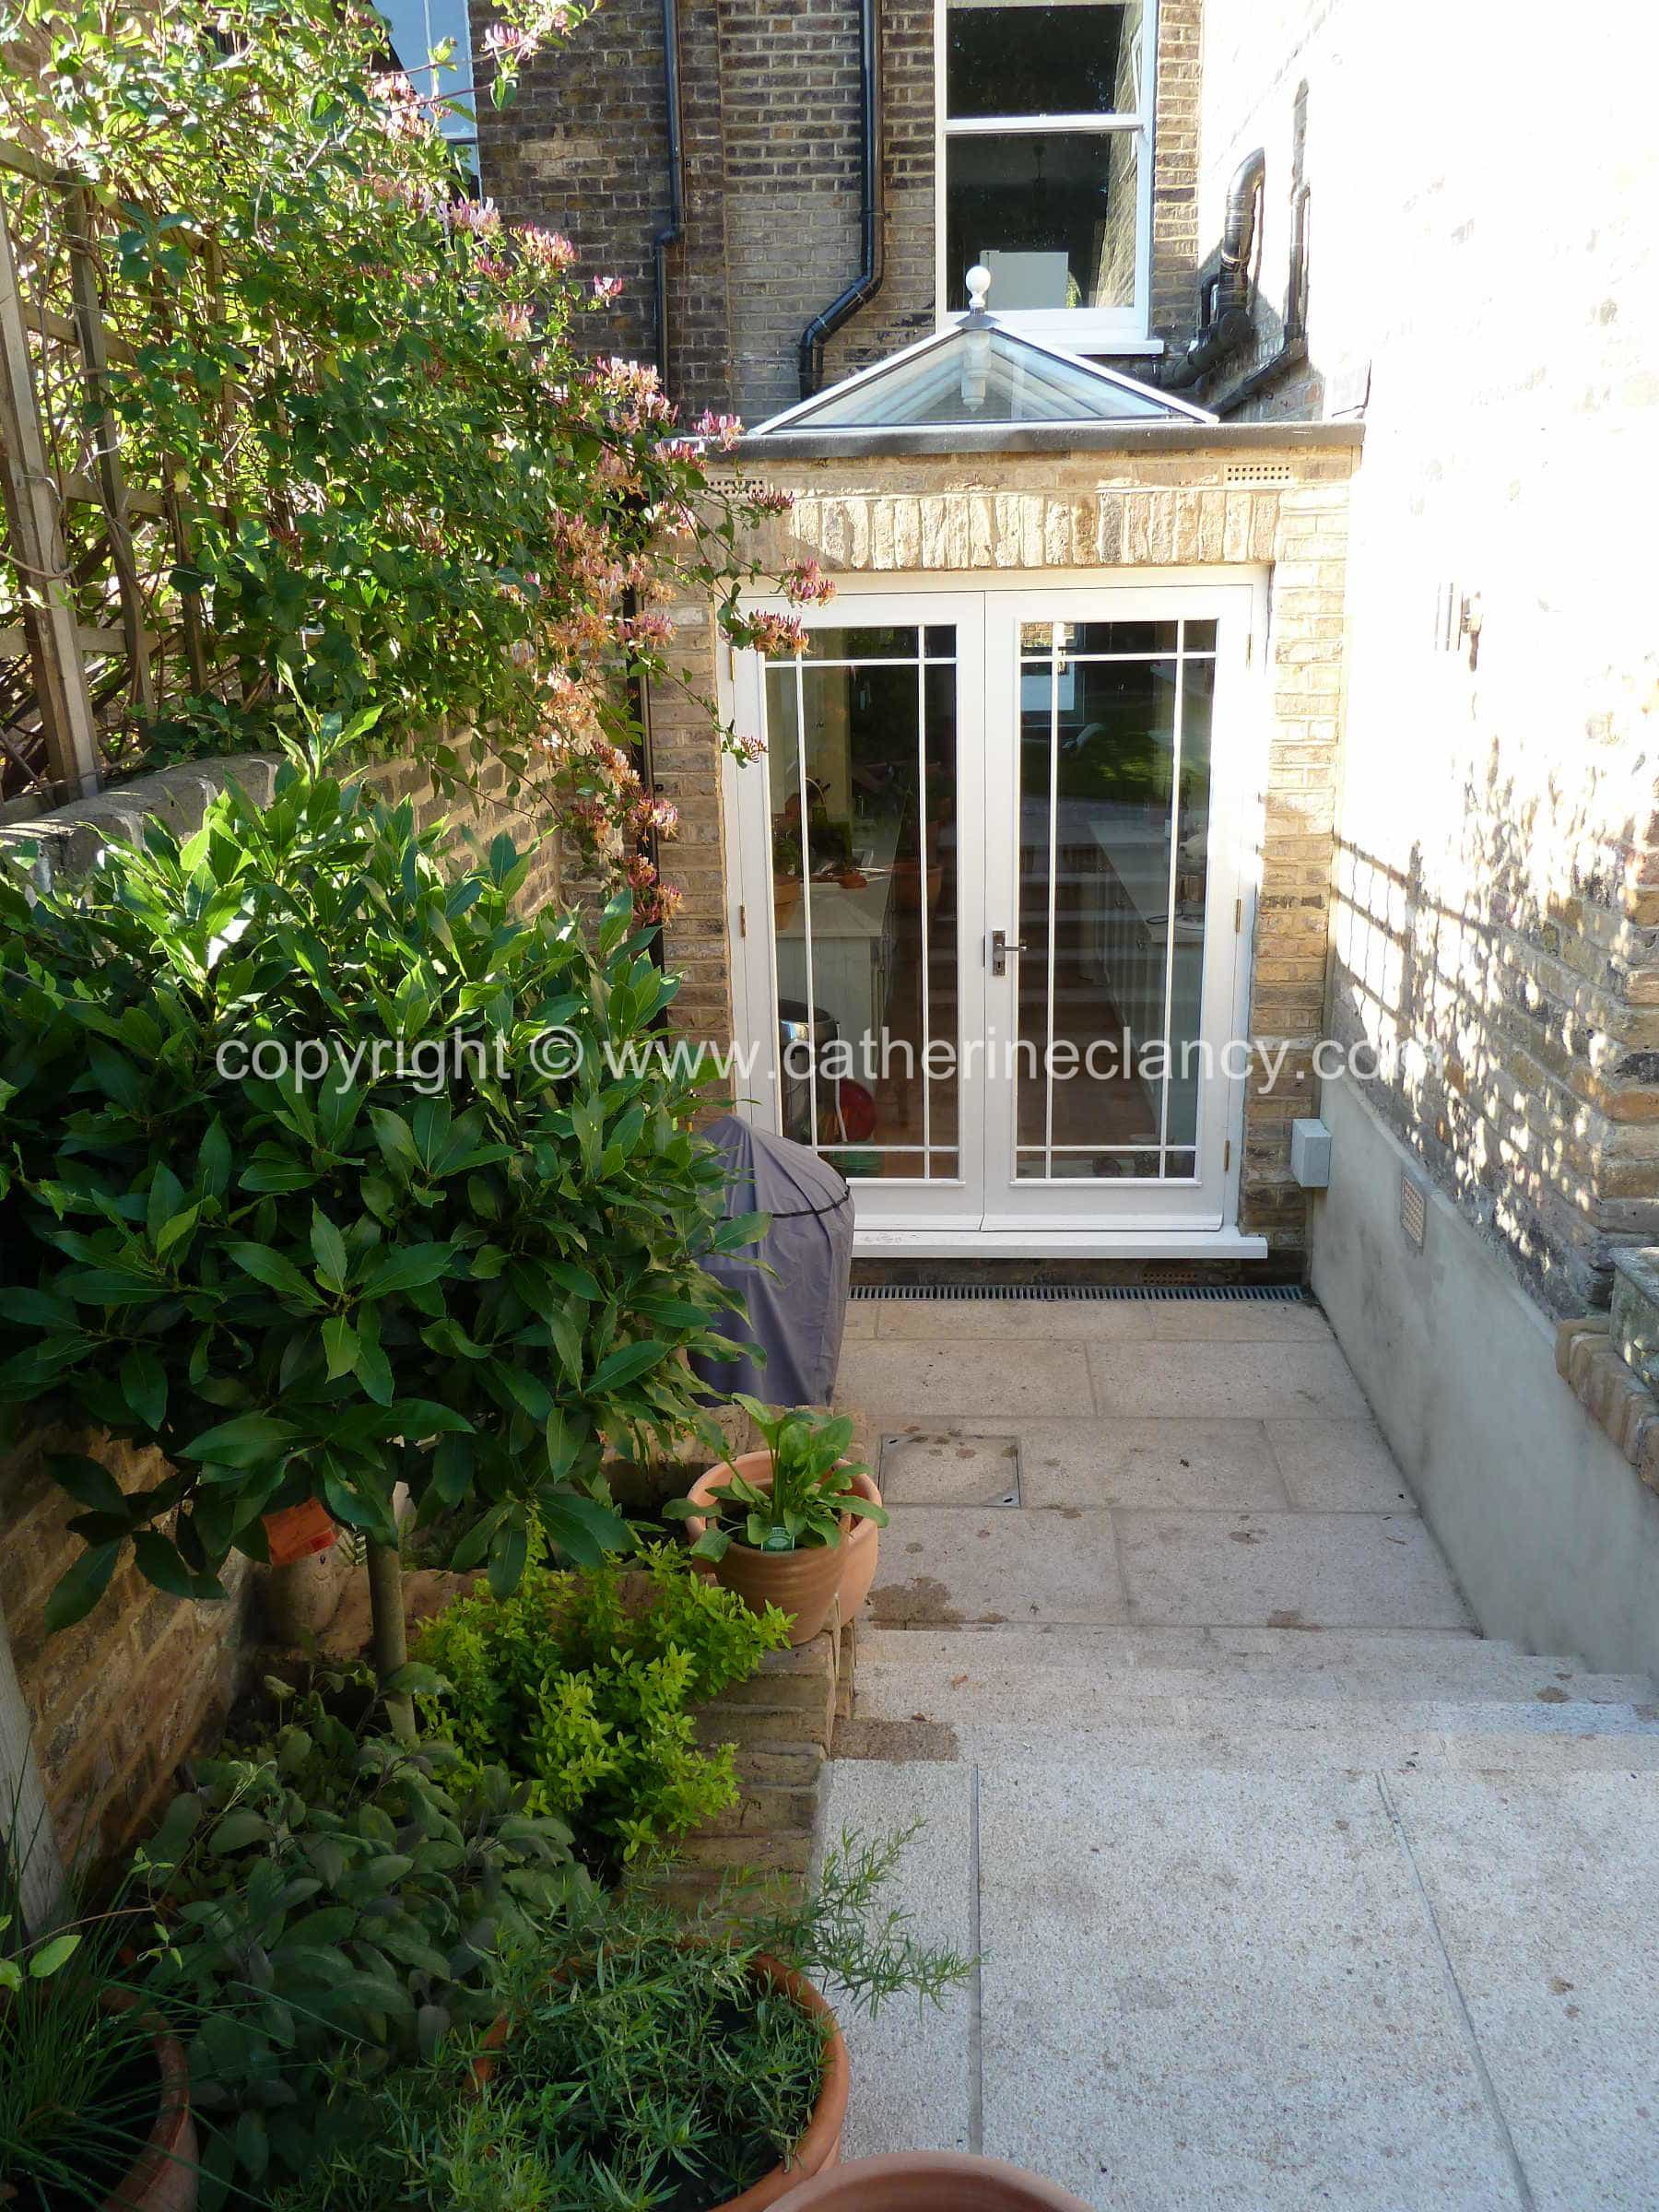 Garden Design North Facing victorian north facing garden - garden design london - catherine